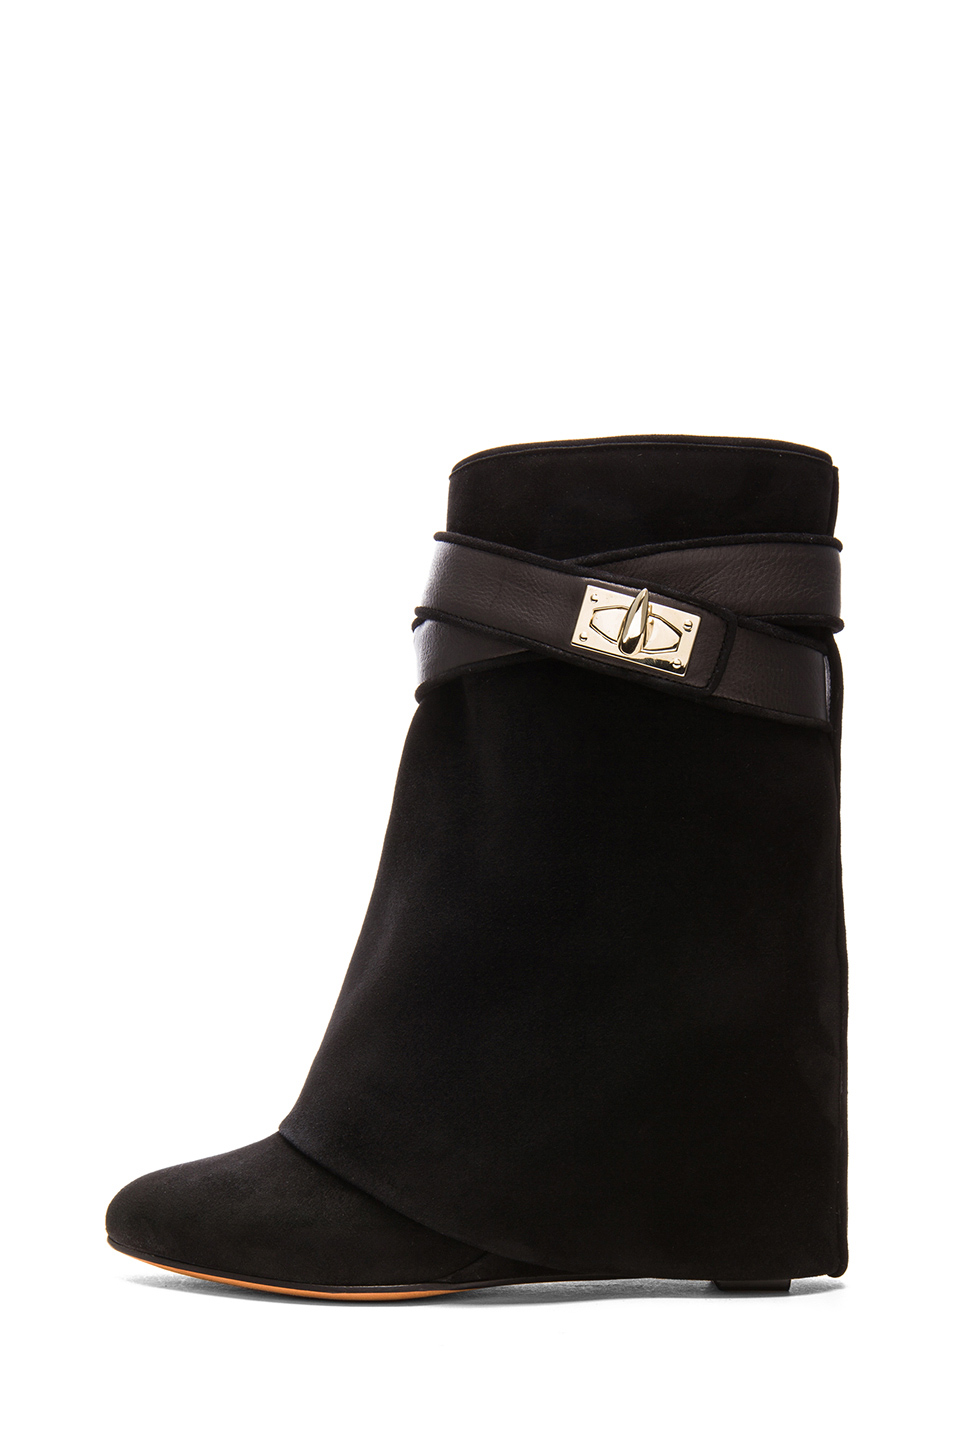 GIVENCHY|Shark Lock Suede Boots in Black